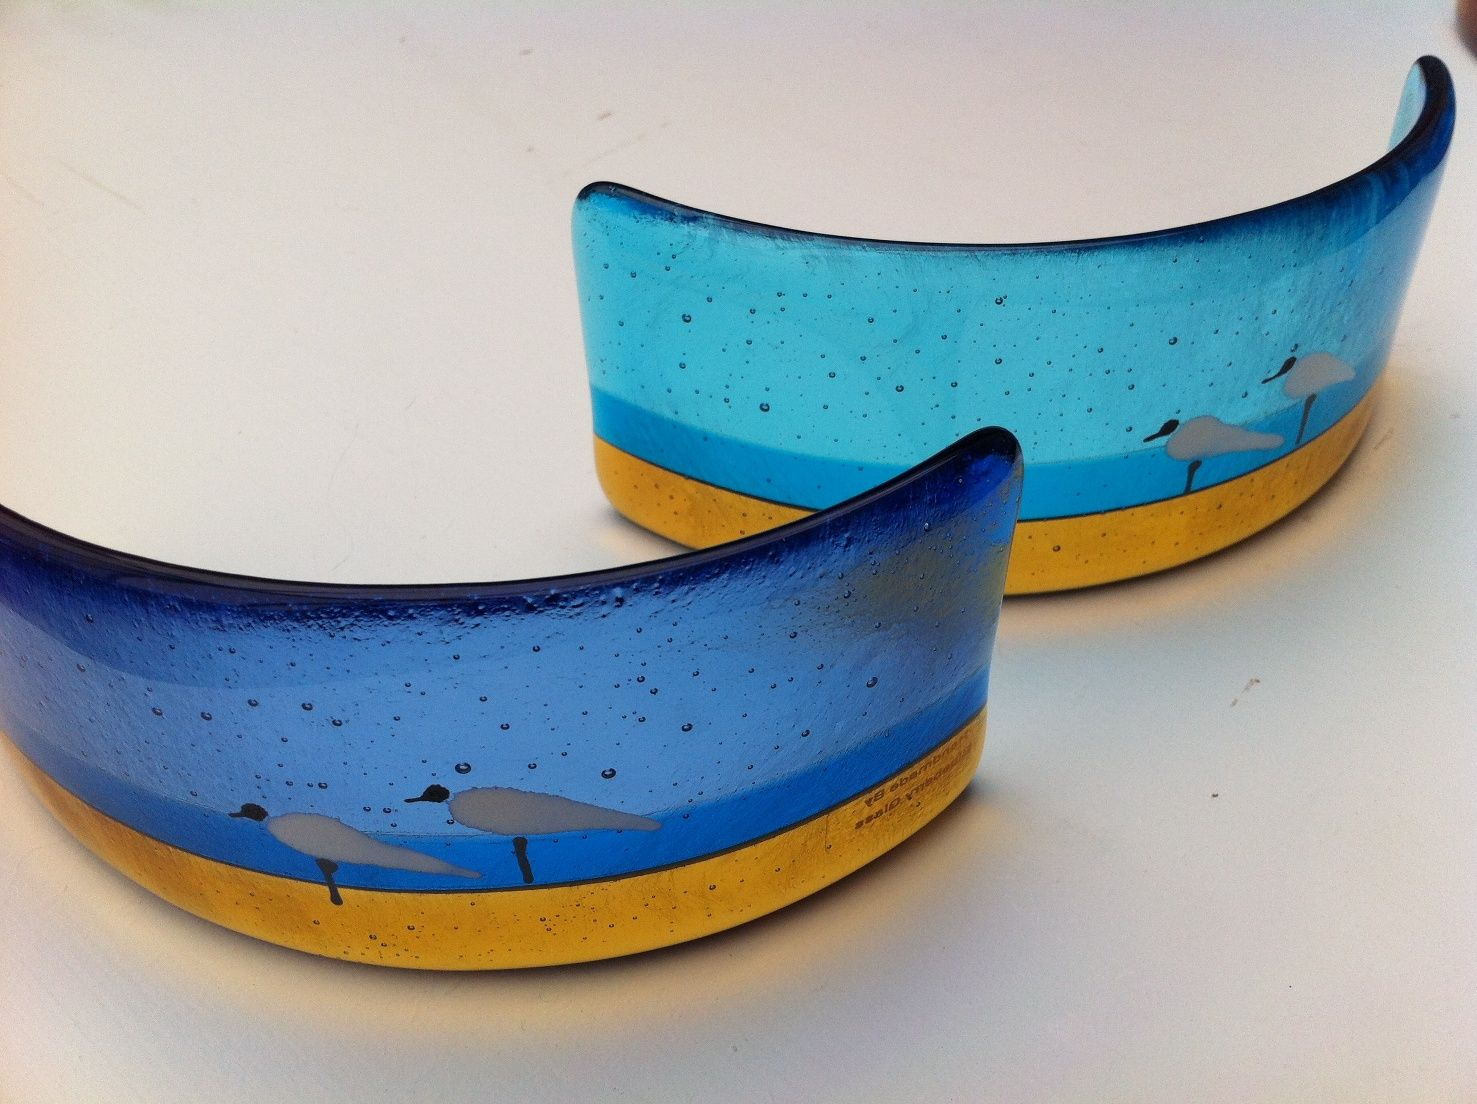 Row of beach huts curved fused glass table clock - Blue Seagull Design Fused Glass Curve